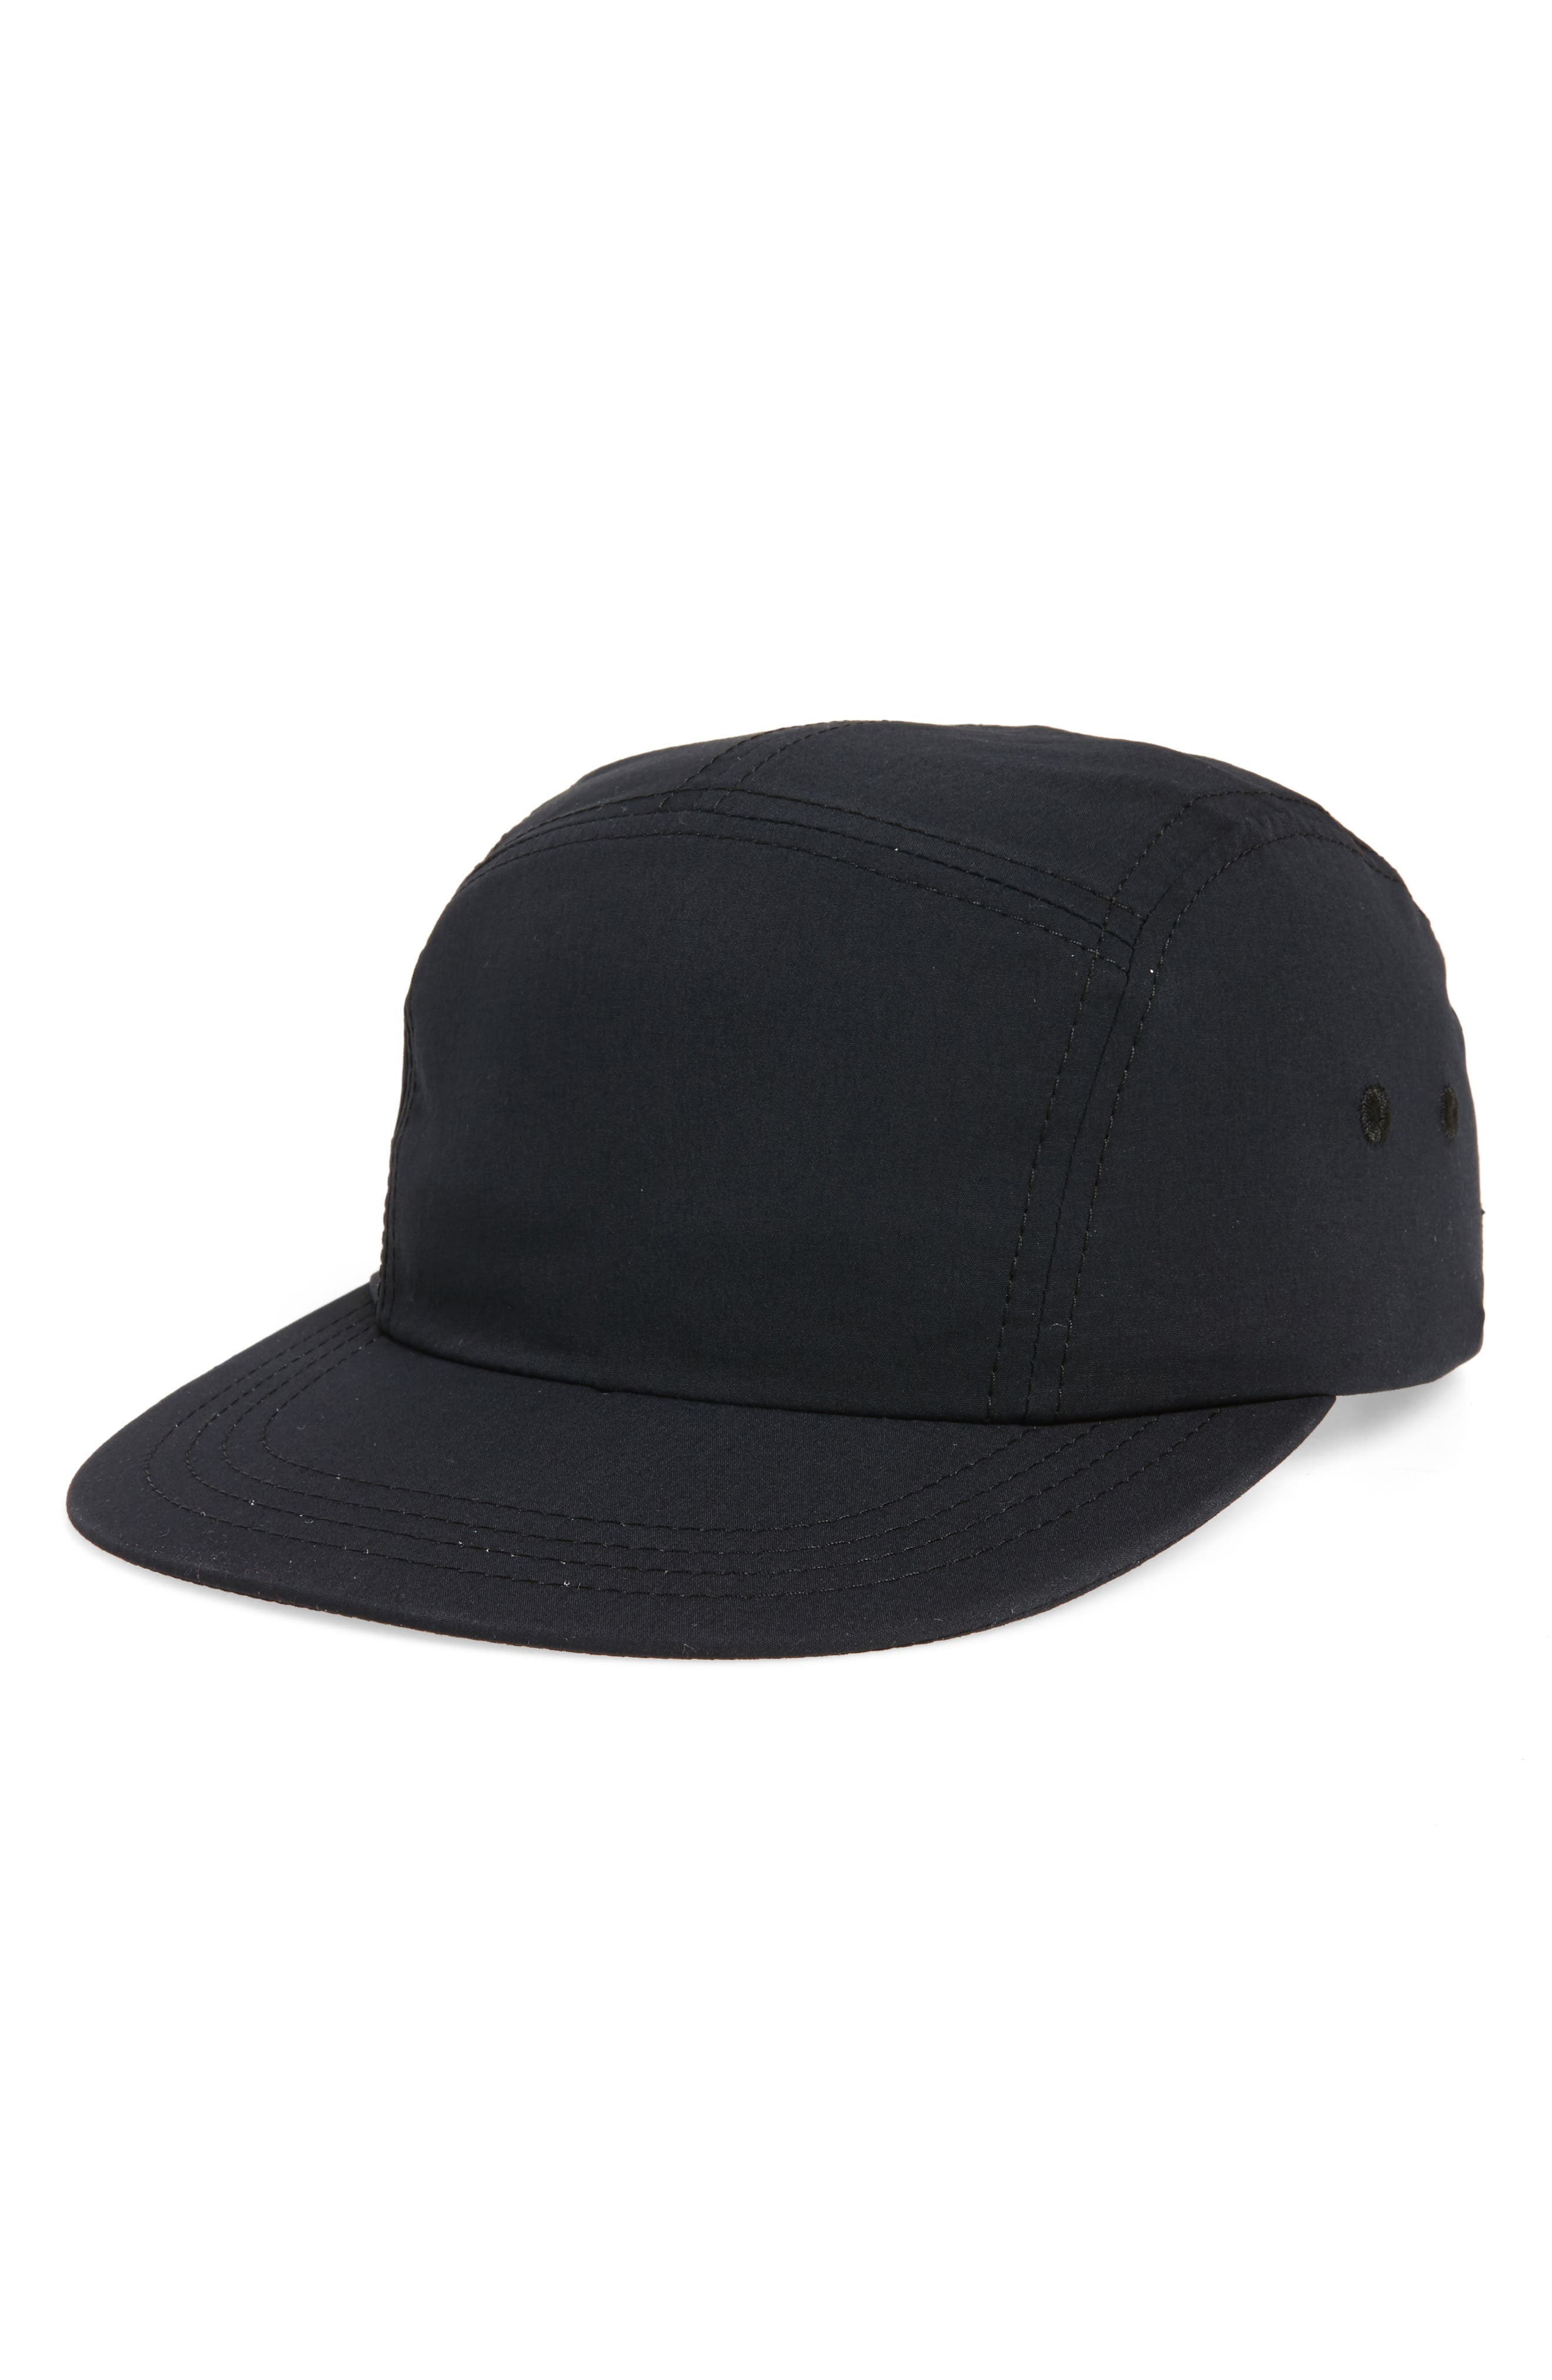 Five Panel Nylon Camp Hat,                             Main thumbnail 1, color,                             Black